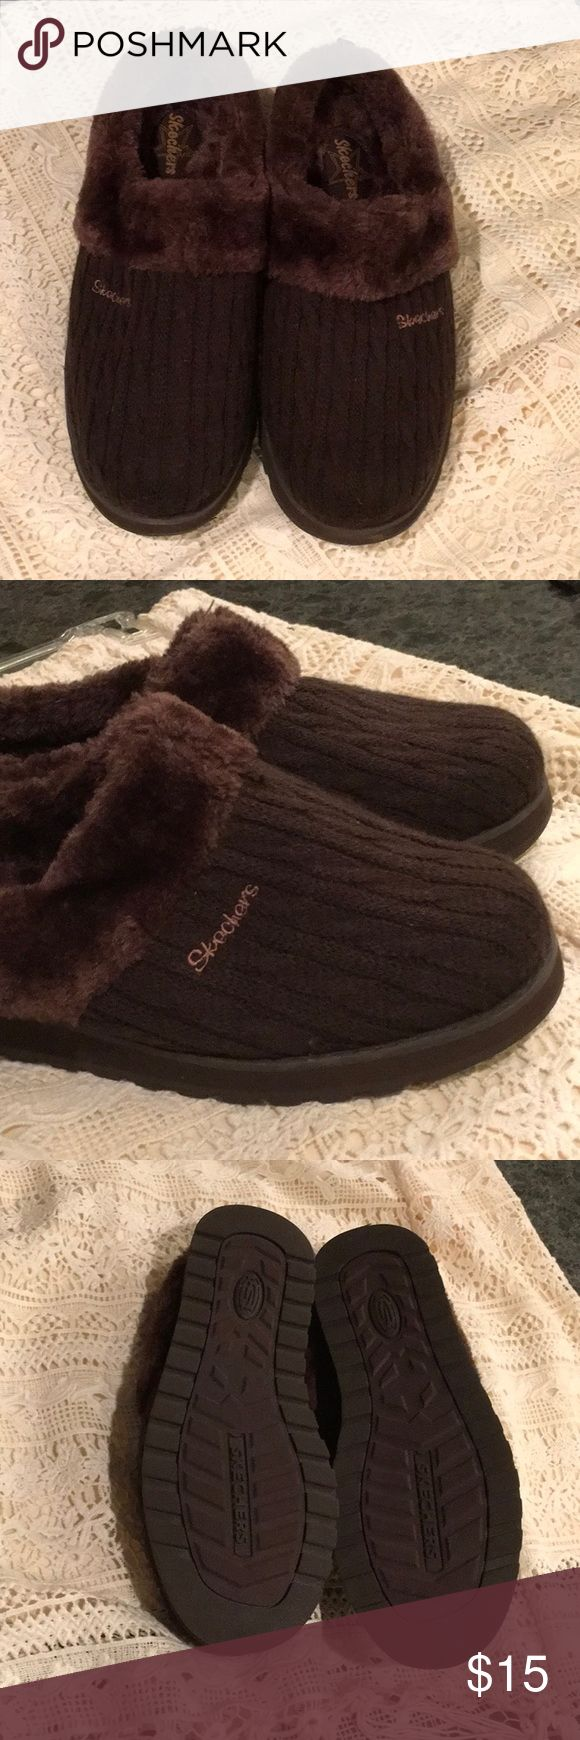 Sketchers Slippers Sketchers indoor/outdoor slide on slippers. Not worn, excellent used condition but would not know they are not new! Very comfortable and cozy. Skechers Shoes Slippers